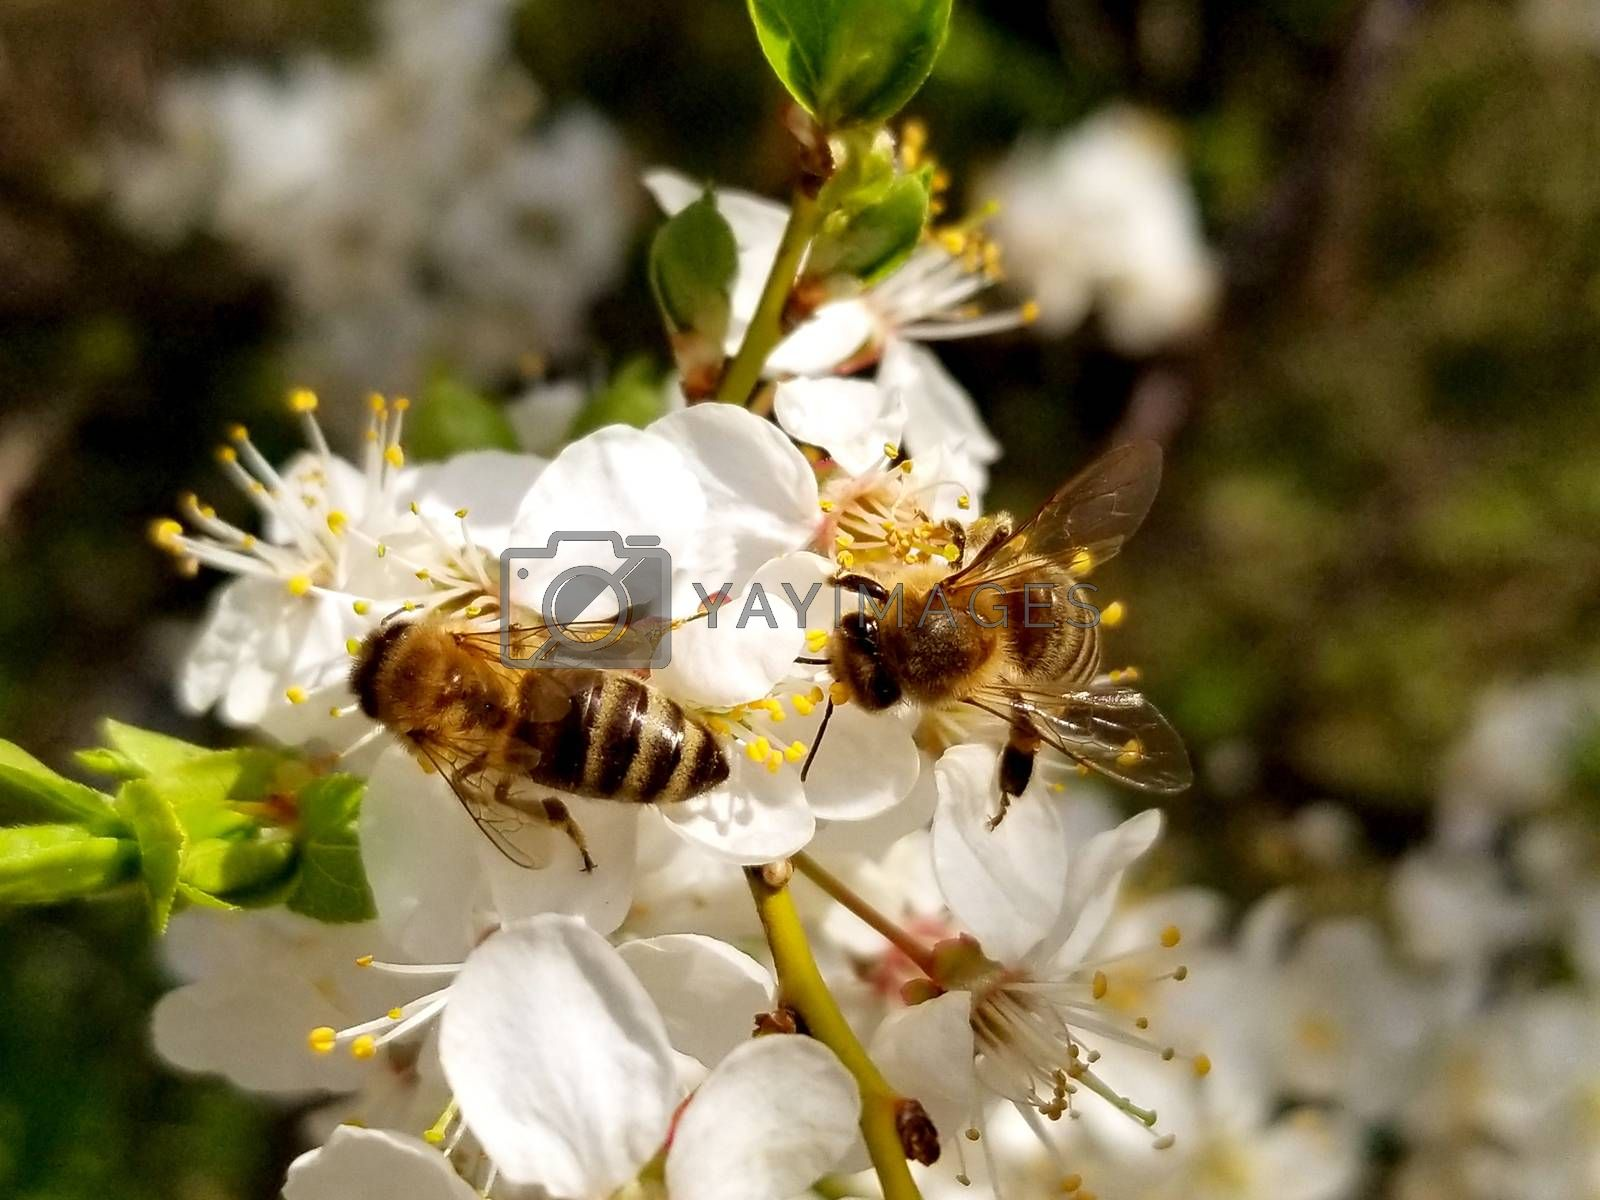 two bees collects nectar on the flowers of white blooming apple. Anthophila, Apis mellifera. Close up